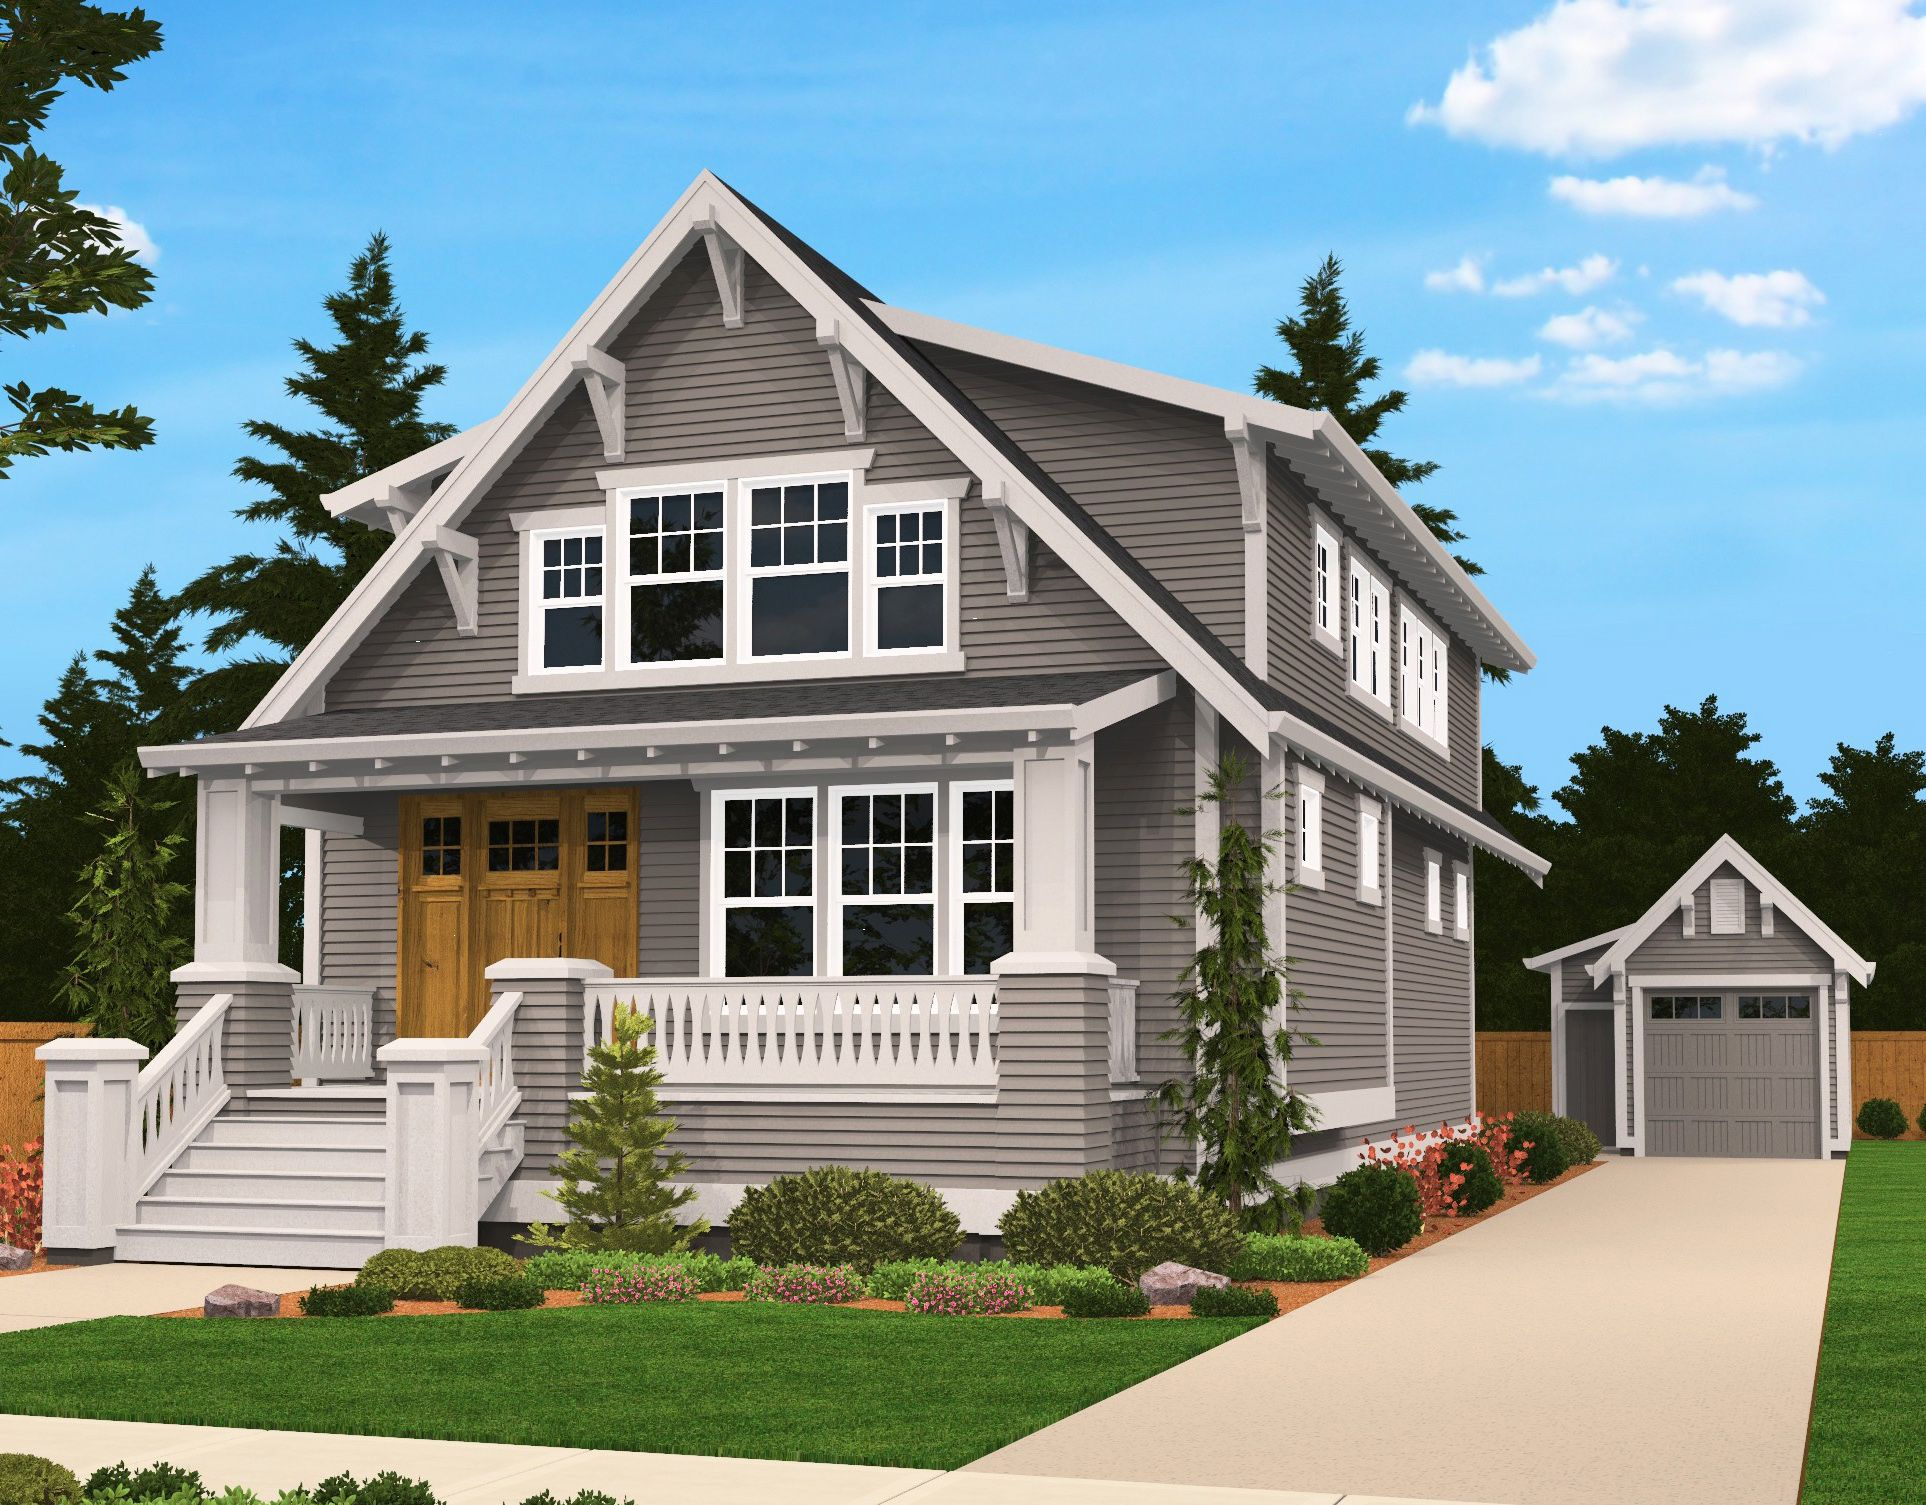 Tiny Bungalow House Plan   85058MS   Bungalow  Cottage  Country     Tiny Bungalow House Plan   85058MS   Bungalow  Cottage  Country  Narrow  Lot  2nd Floor Master Suite  CAD Available  Den Office Library Study  Loft